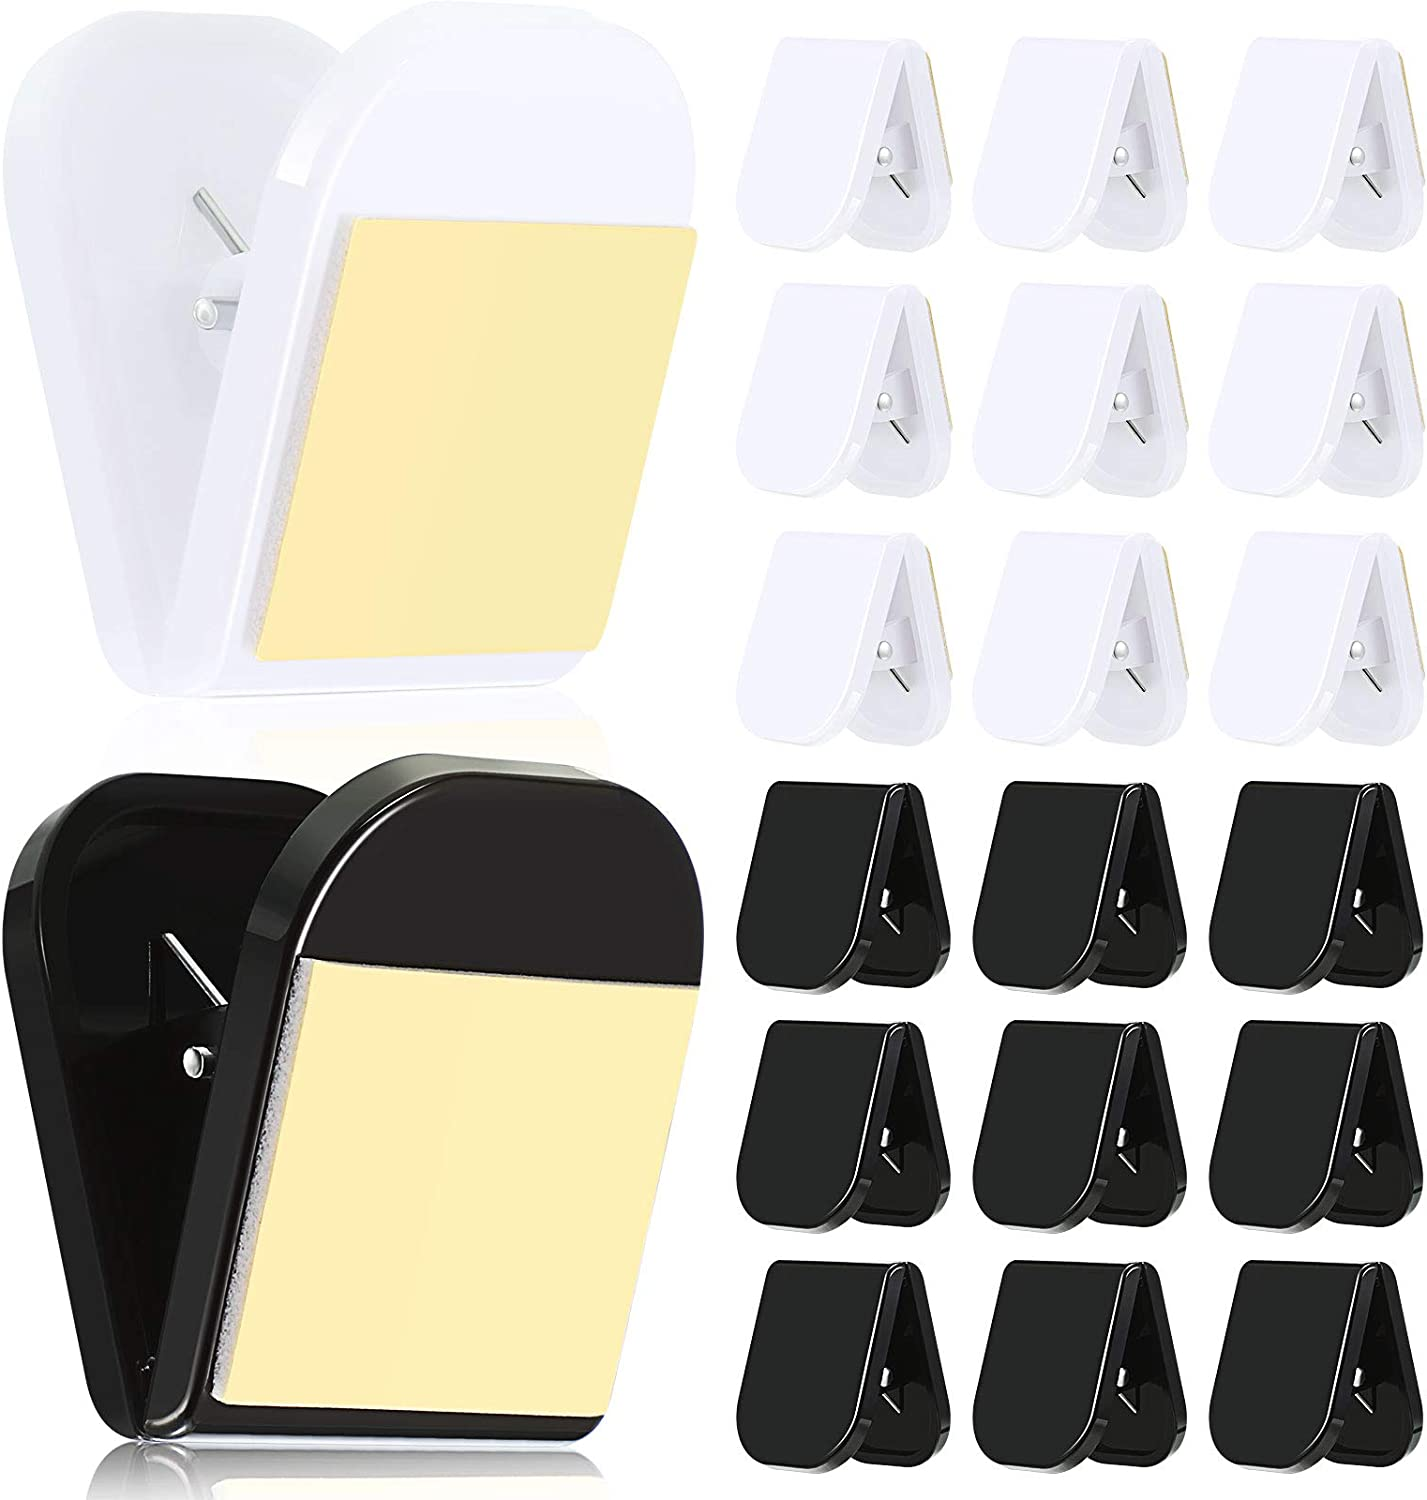 20 Pieces Self Adhesive Clips Wall Clips Tapestry Clips Photo Clips for Paper Flag Hanger, Double-Sided Adhesive Spring Clips for Home Office Rope Light Poster (Black and White)